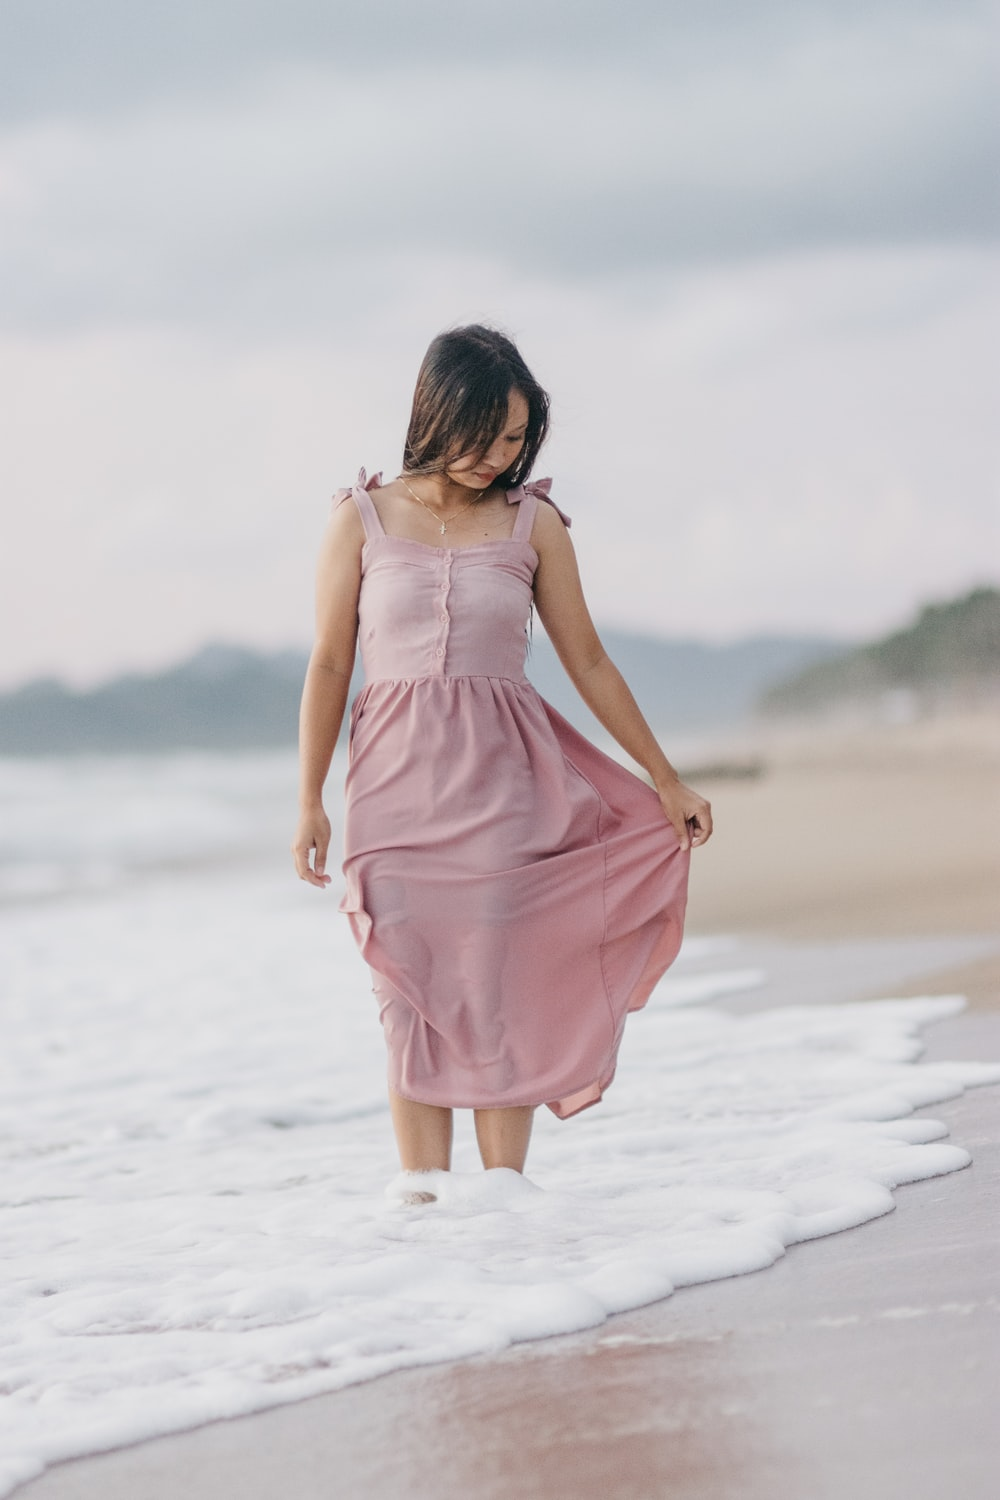 woman in pink sleeveless dress standing on beach during daytime